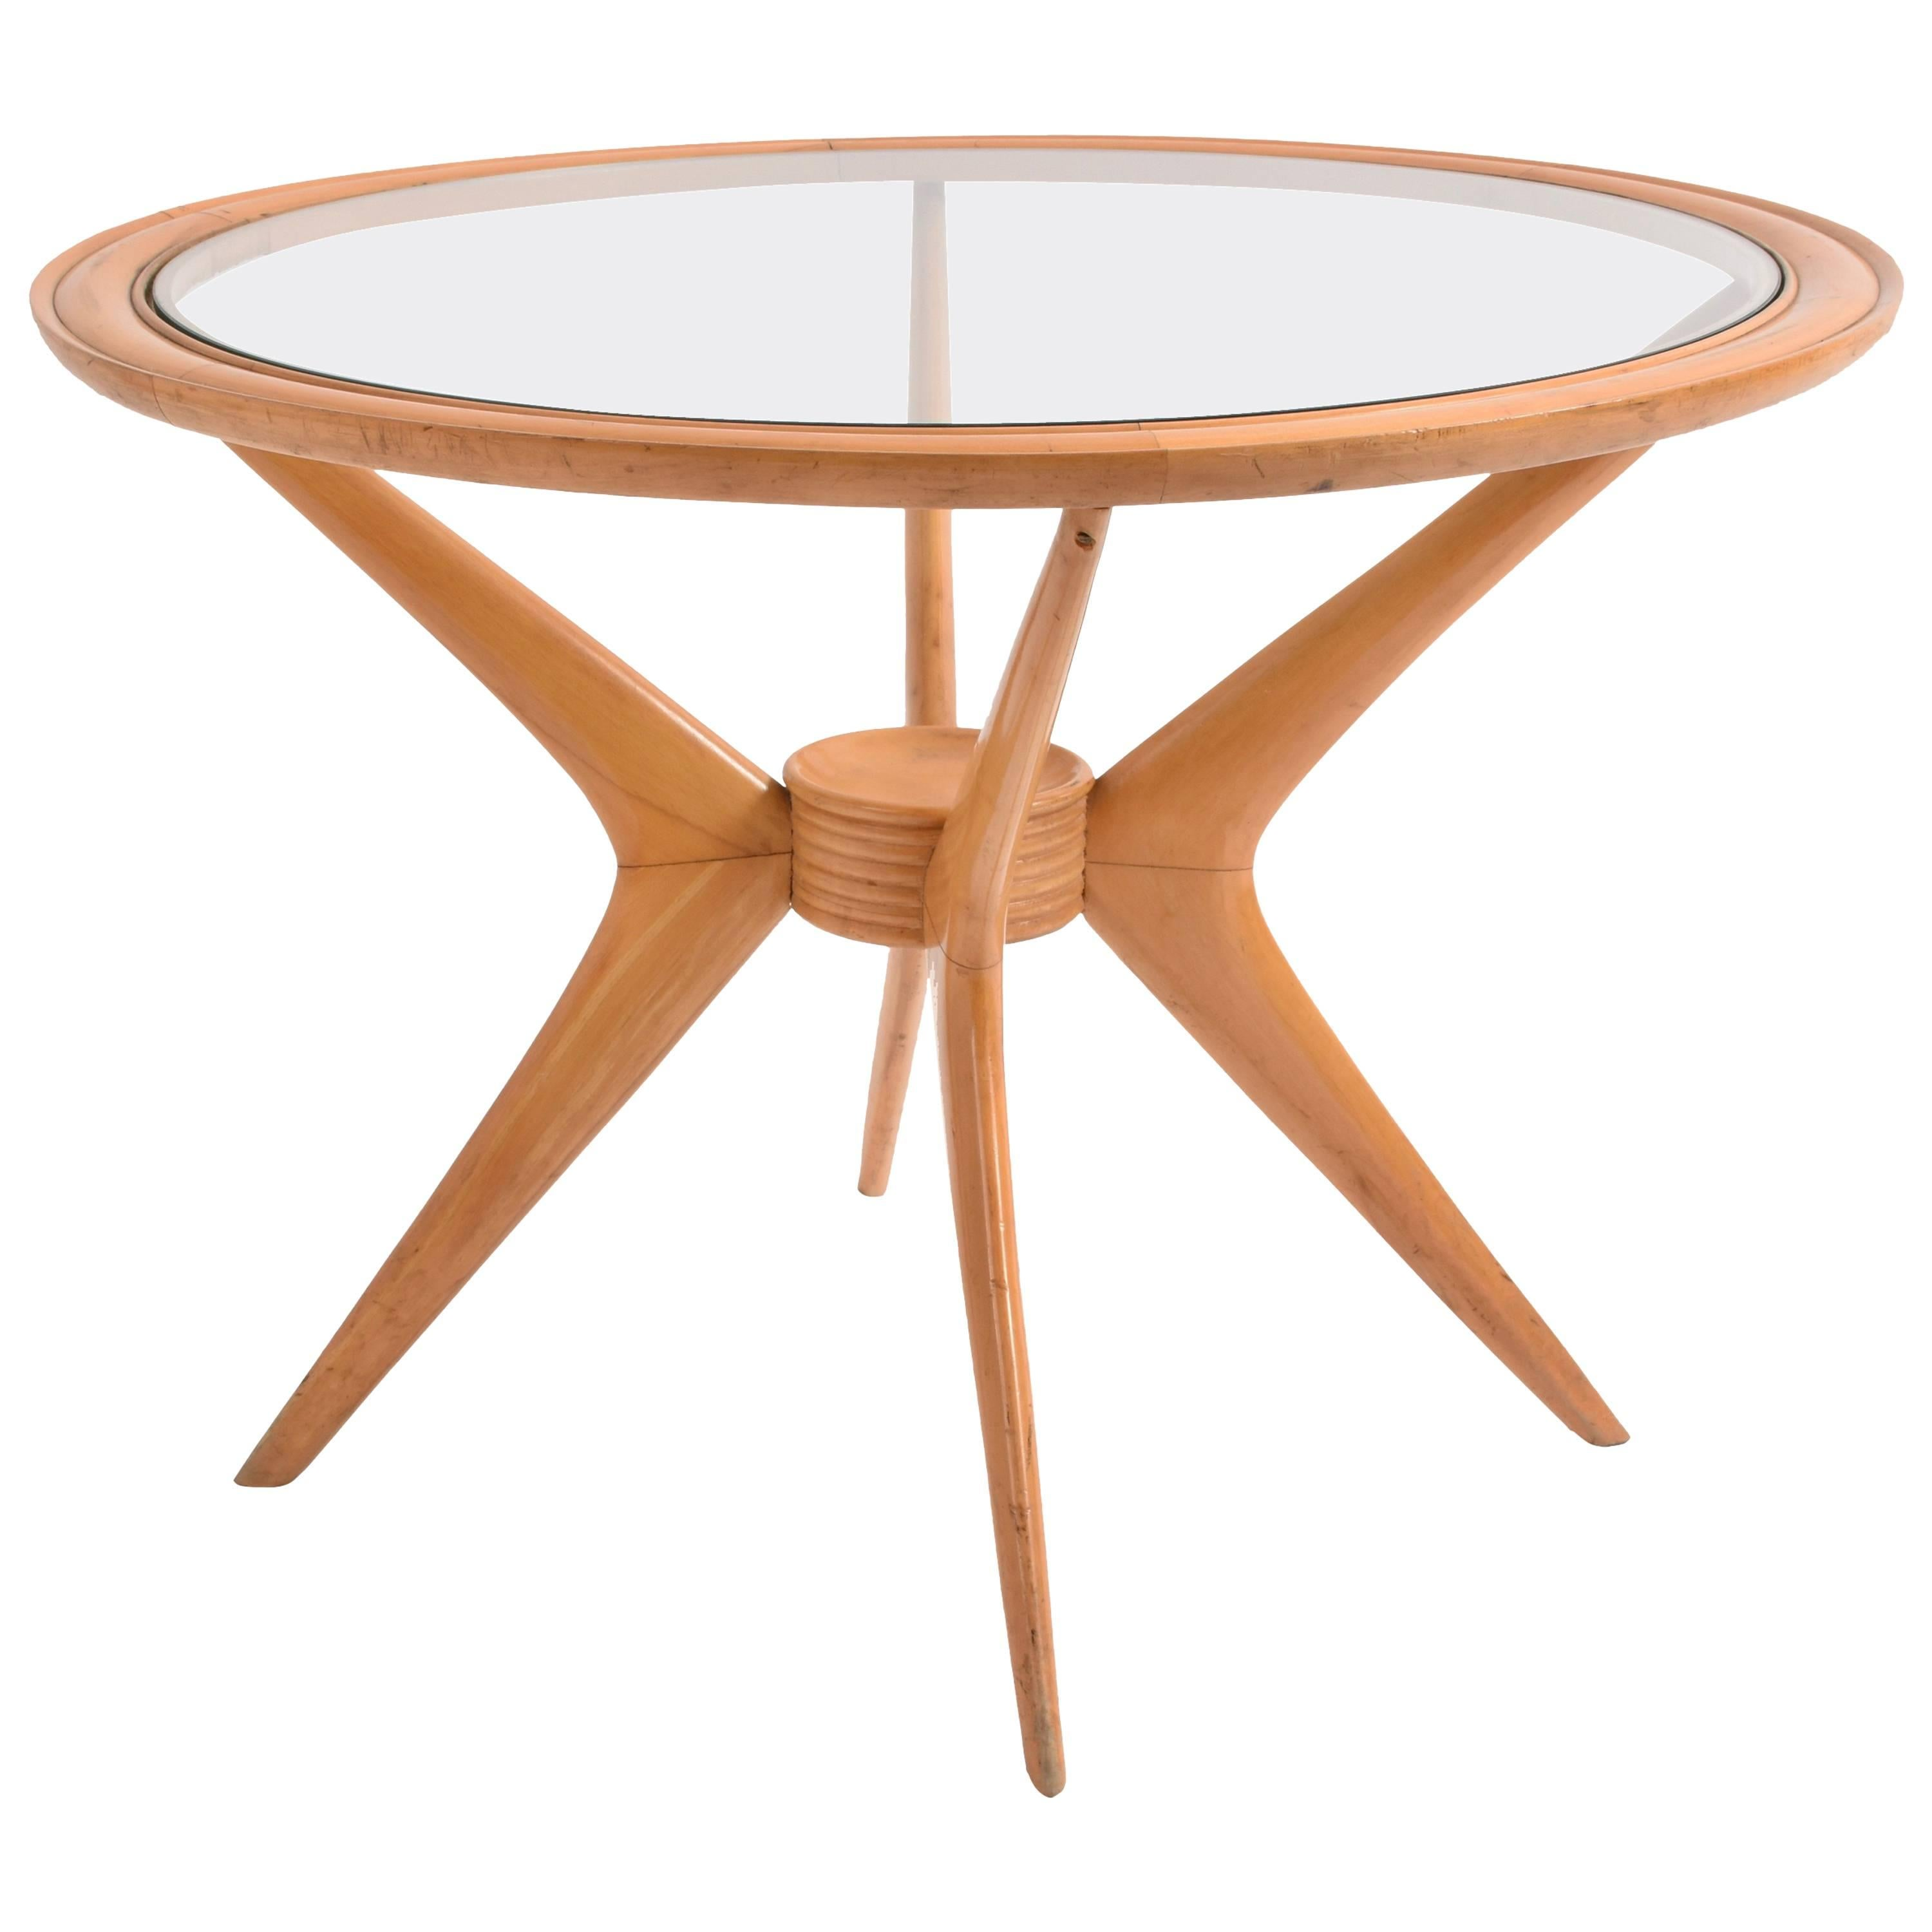 Midcentury Coffee Table In Birchwood By Cesare Lacca For Cassina, Italian,  1950s For Sale